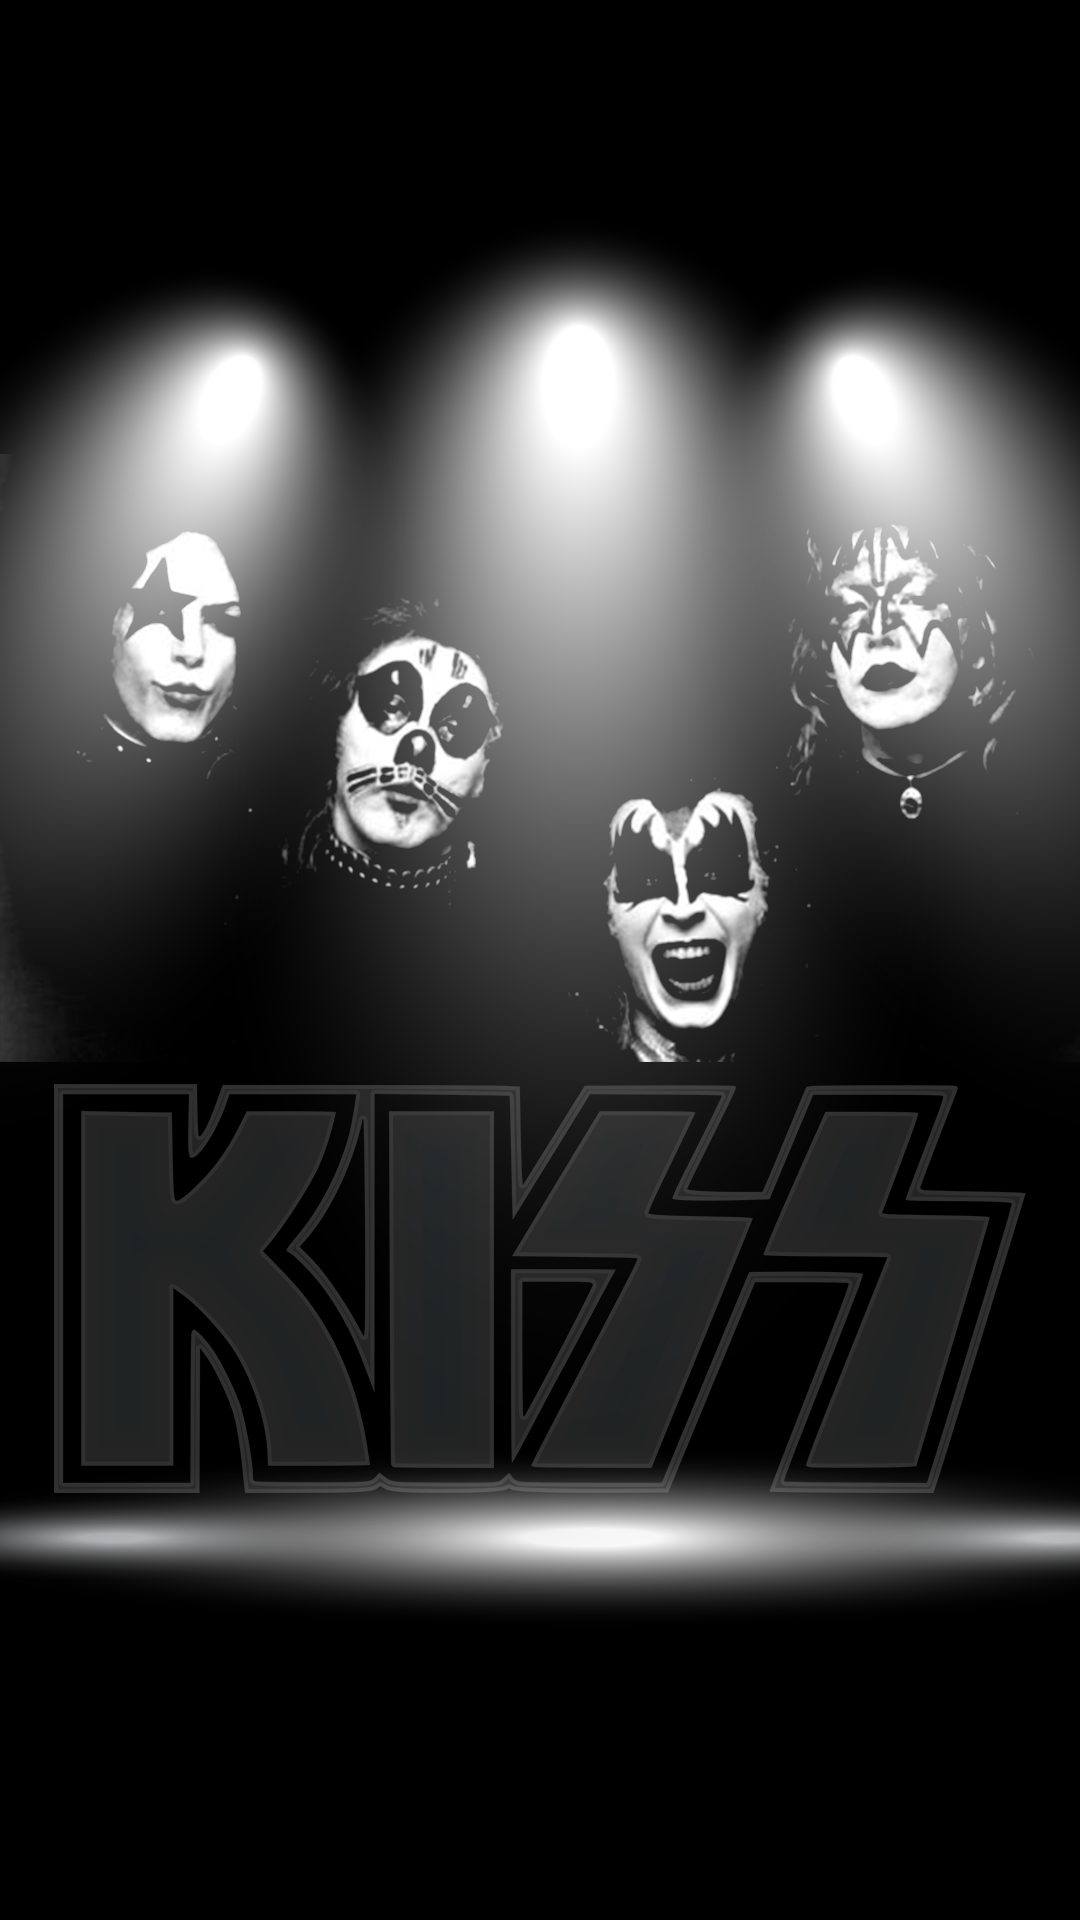 Download Our HD Kiss Band Wallpaper For Android Phones 0150